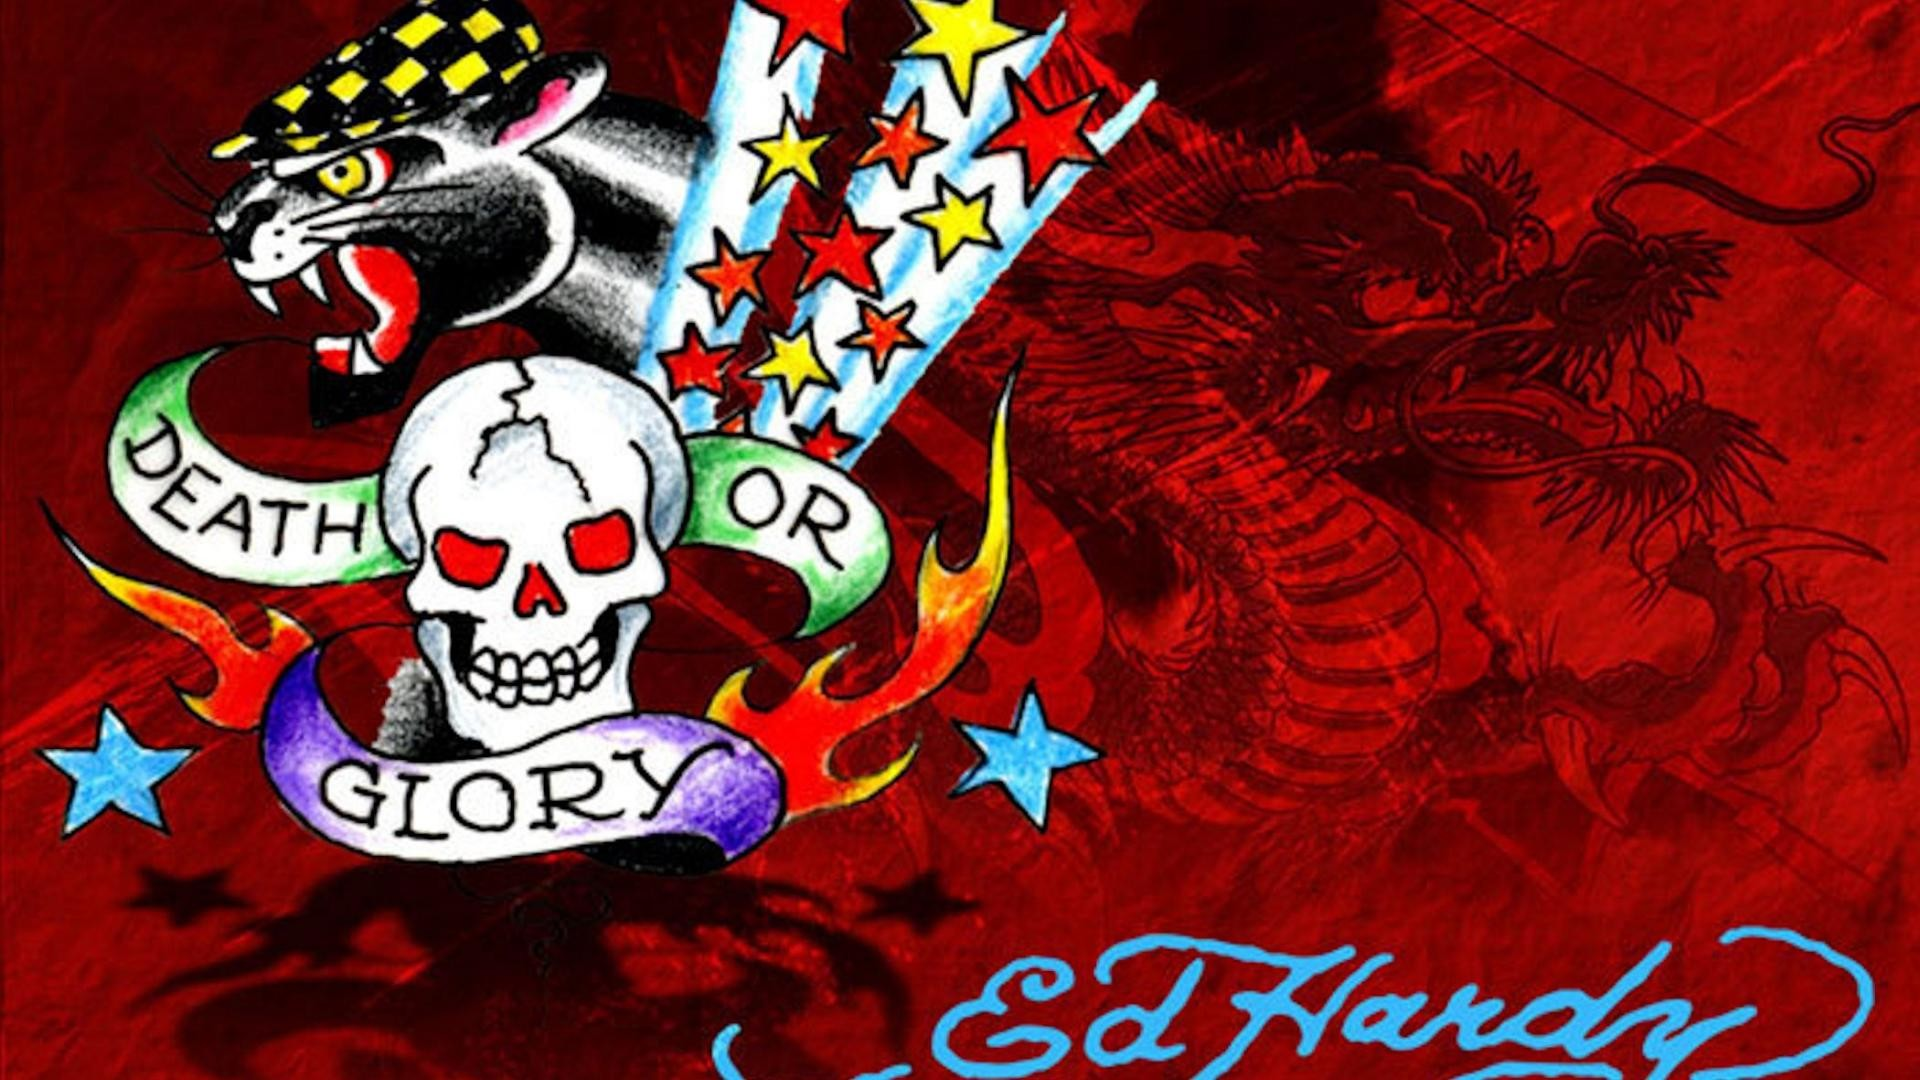 Ed hardy backgrounds 55 images - Ed hardy designs wallpaper ...